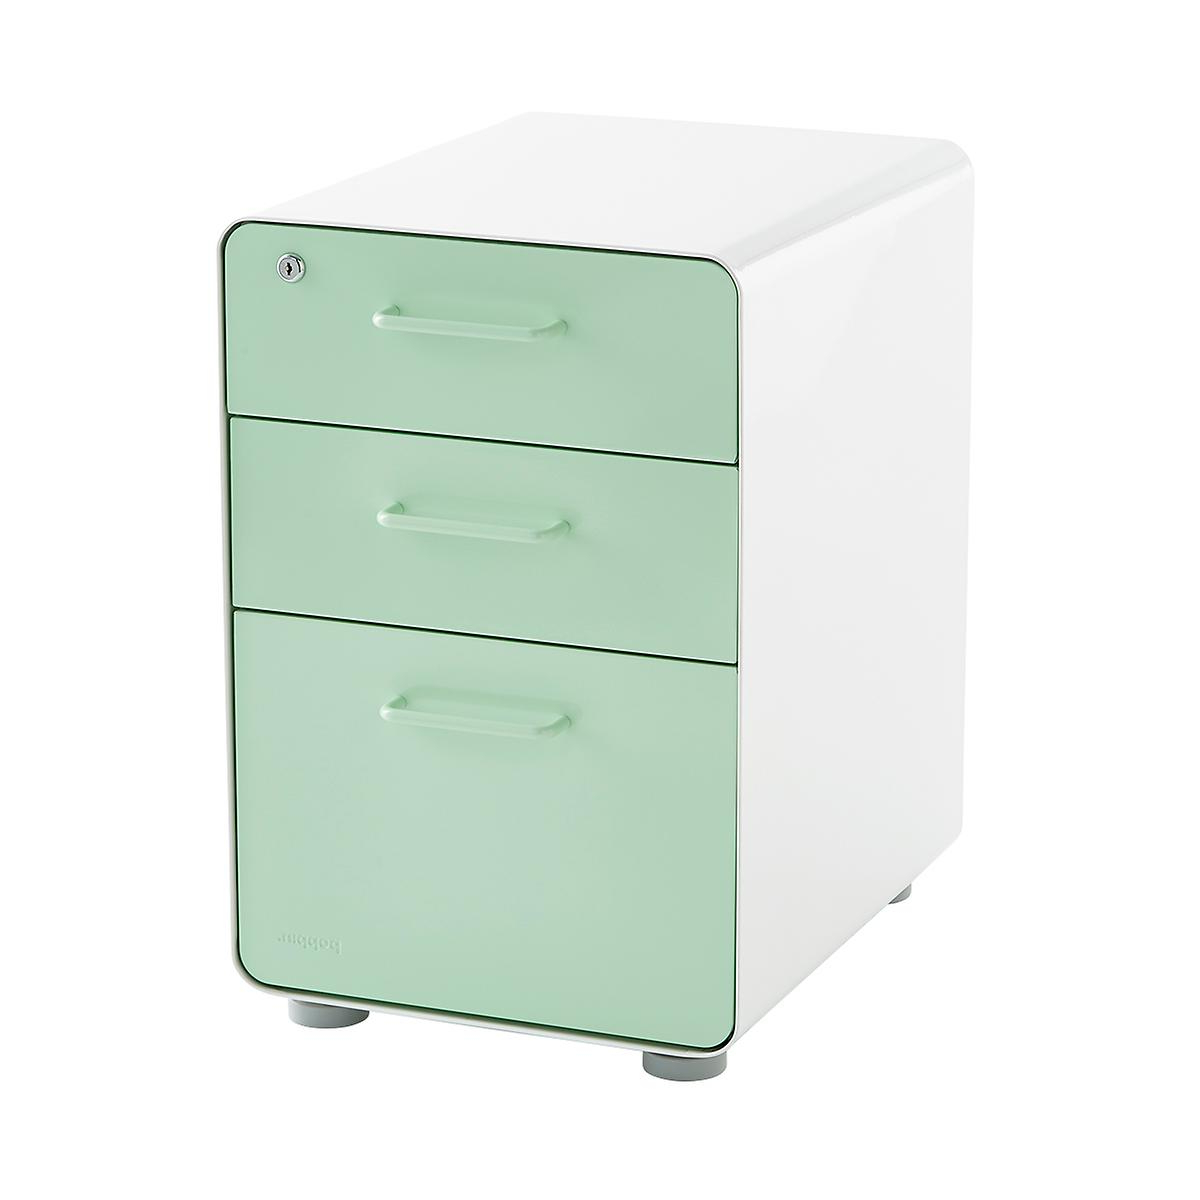 Filing Cabinets H9d9 Poppin Mint 3 Drawer Locking Stow Filing Cabinet the Container Store